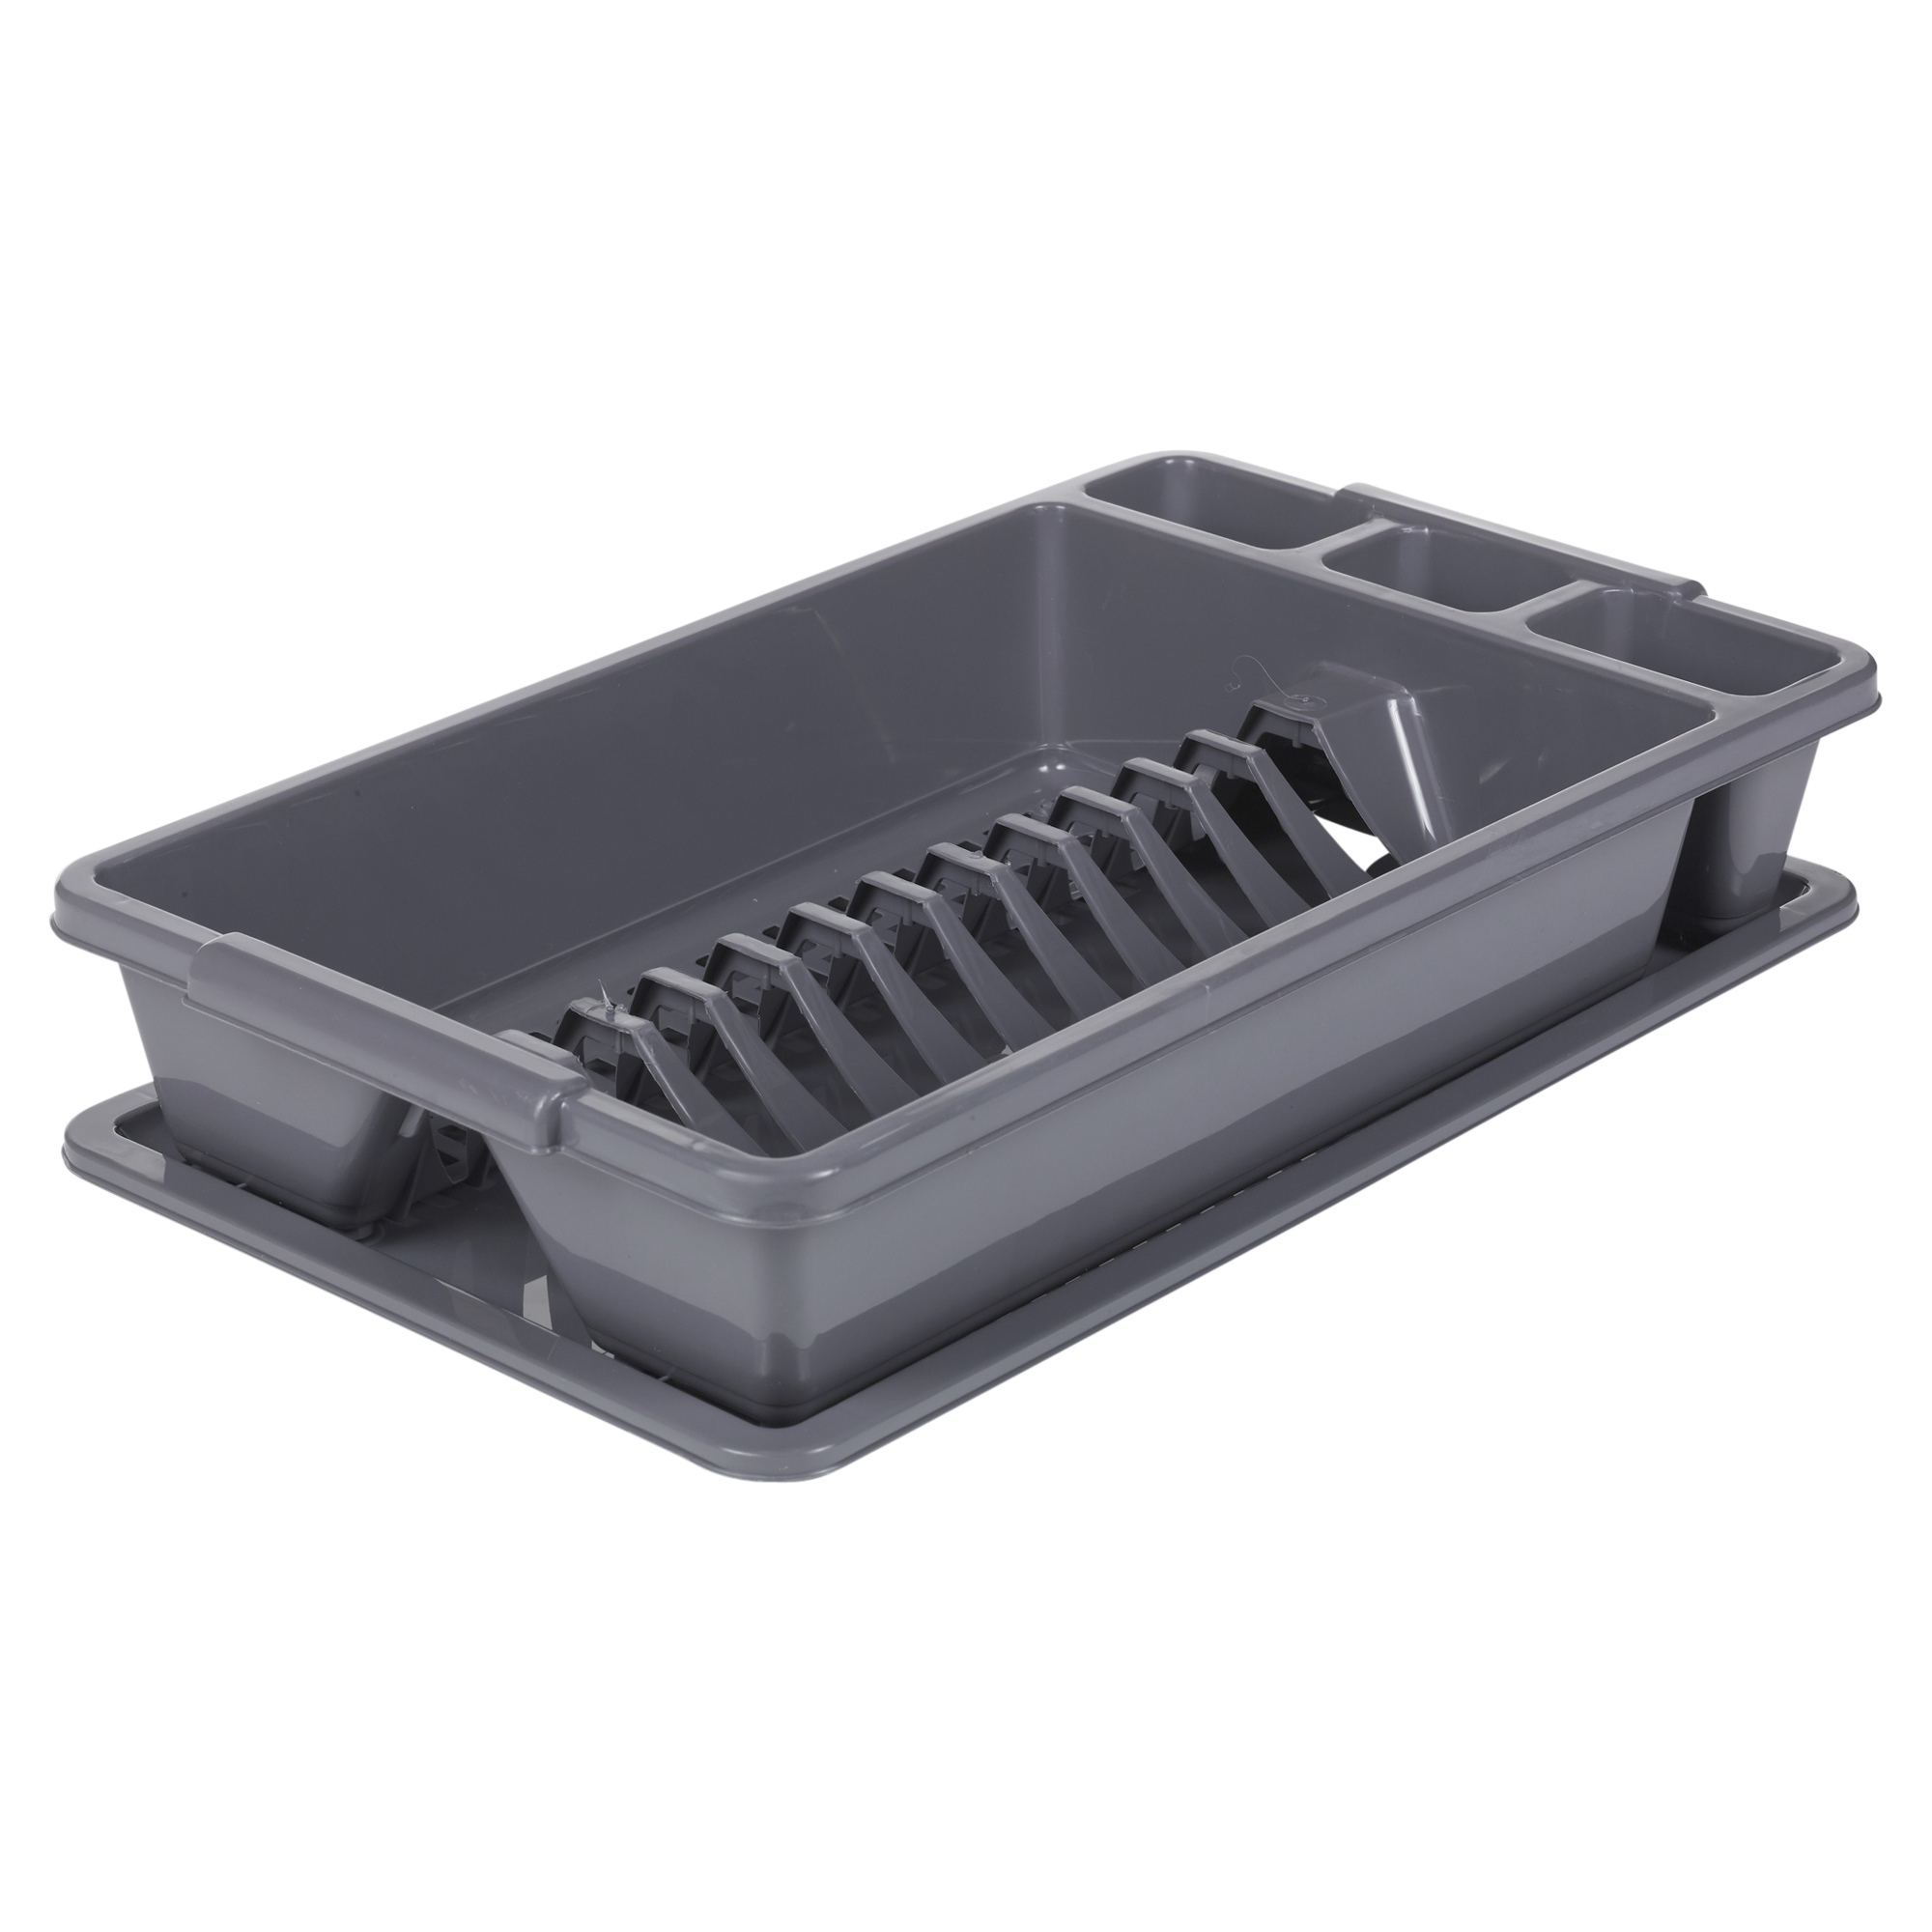 Draining Rack Plastic Dish Drainer Plate Cutlery Rack Kitchen Sink